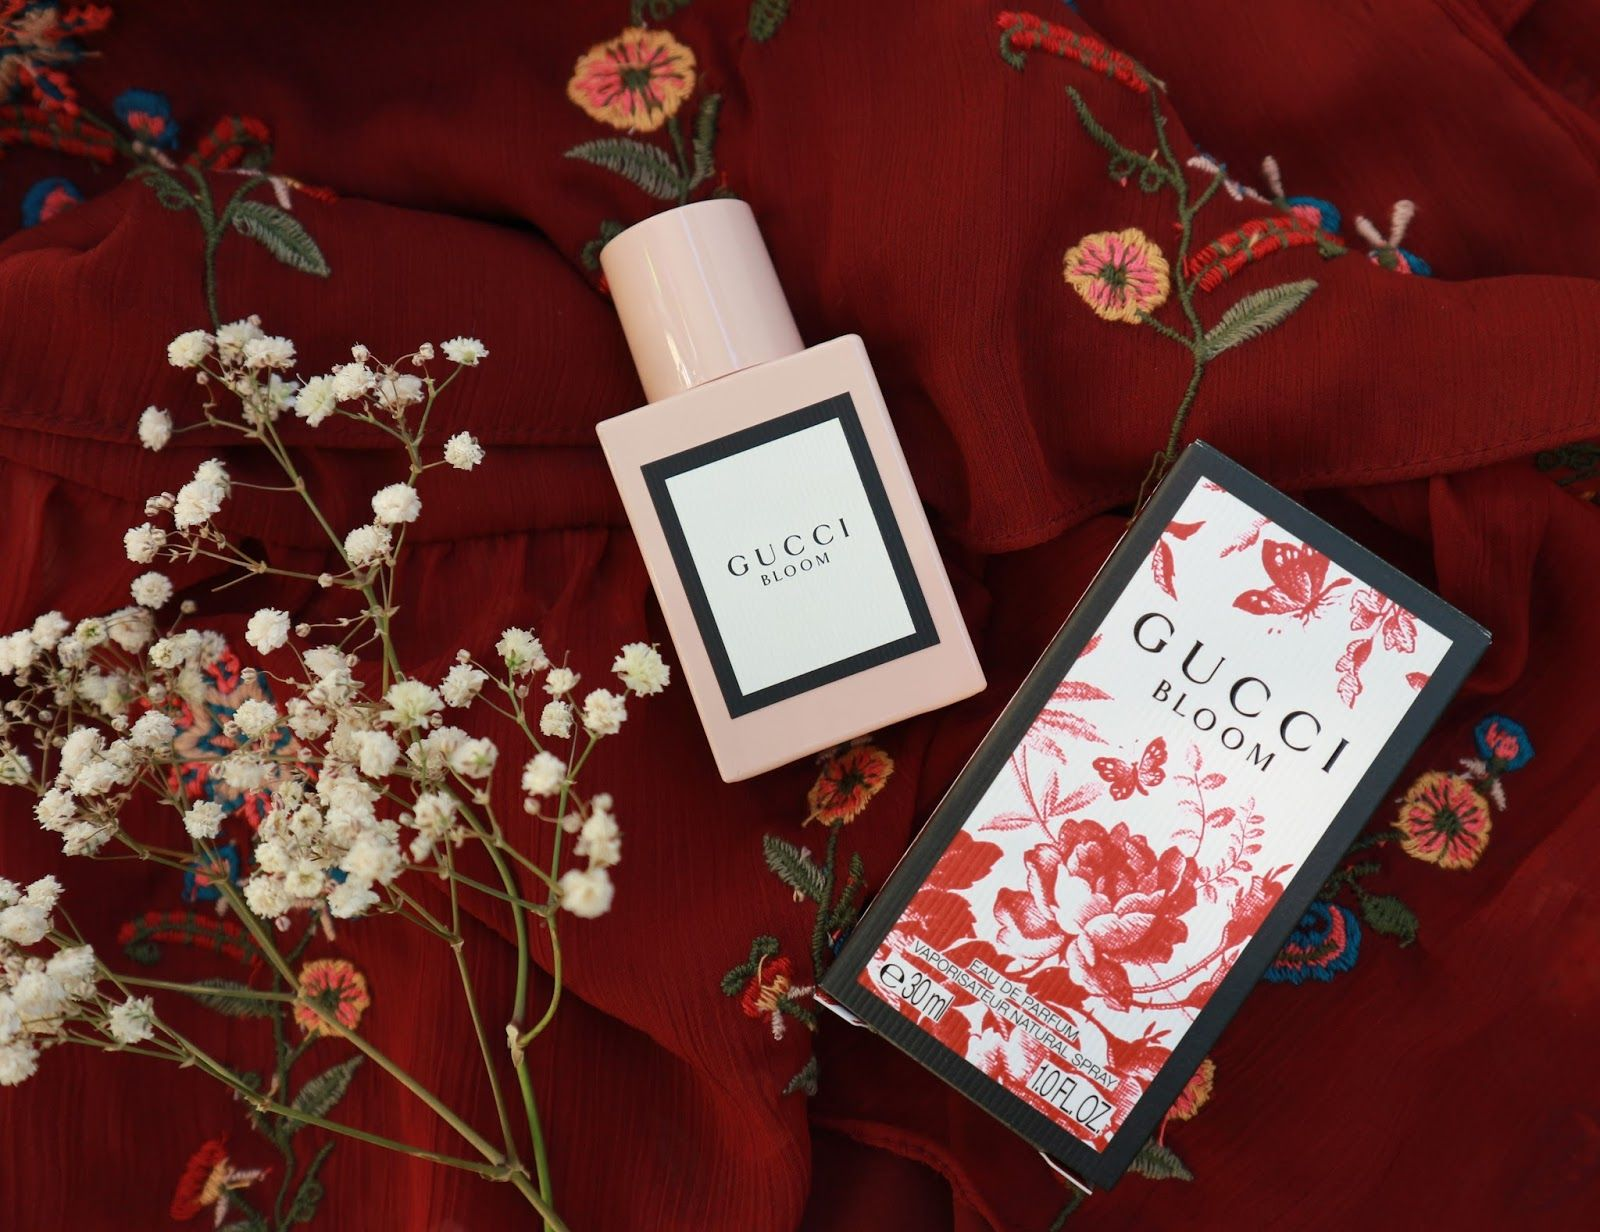 e63448110 Gucci Bloom #anotherkindofbeautyblog #beautyblogger #beautyblog #blogger  #gucciinbloom #guccibloom #gucci #perfume #scent #gucciperfume #beautiful  #pretty ...